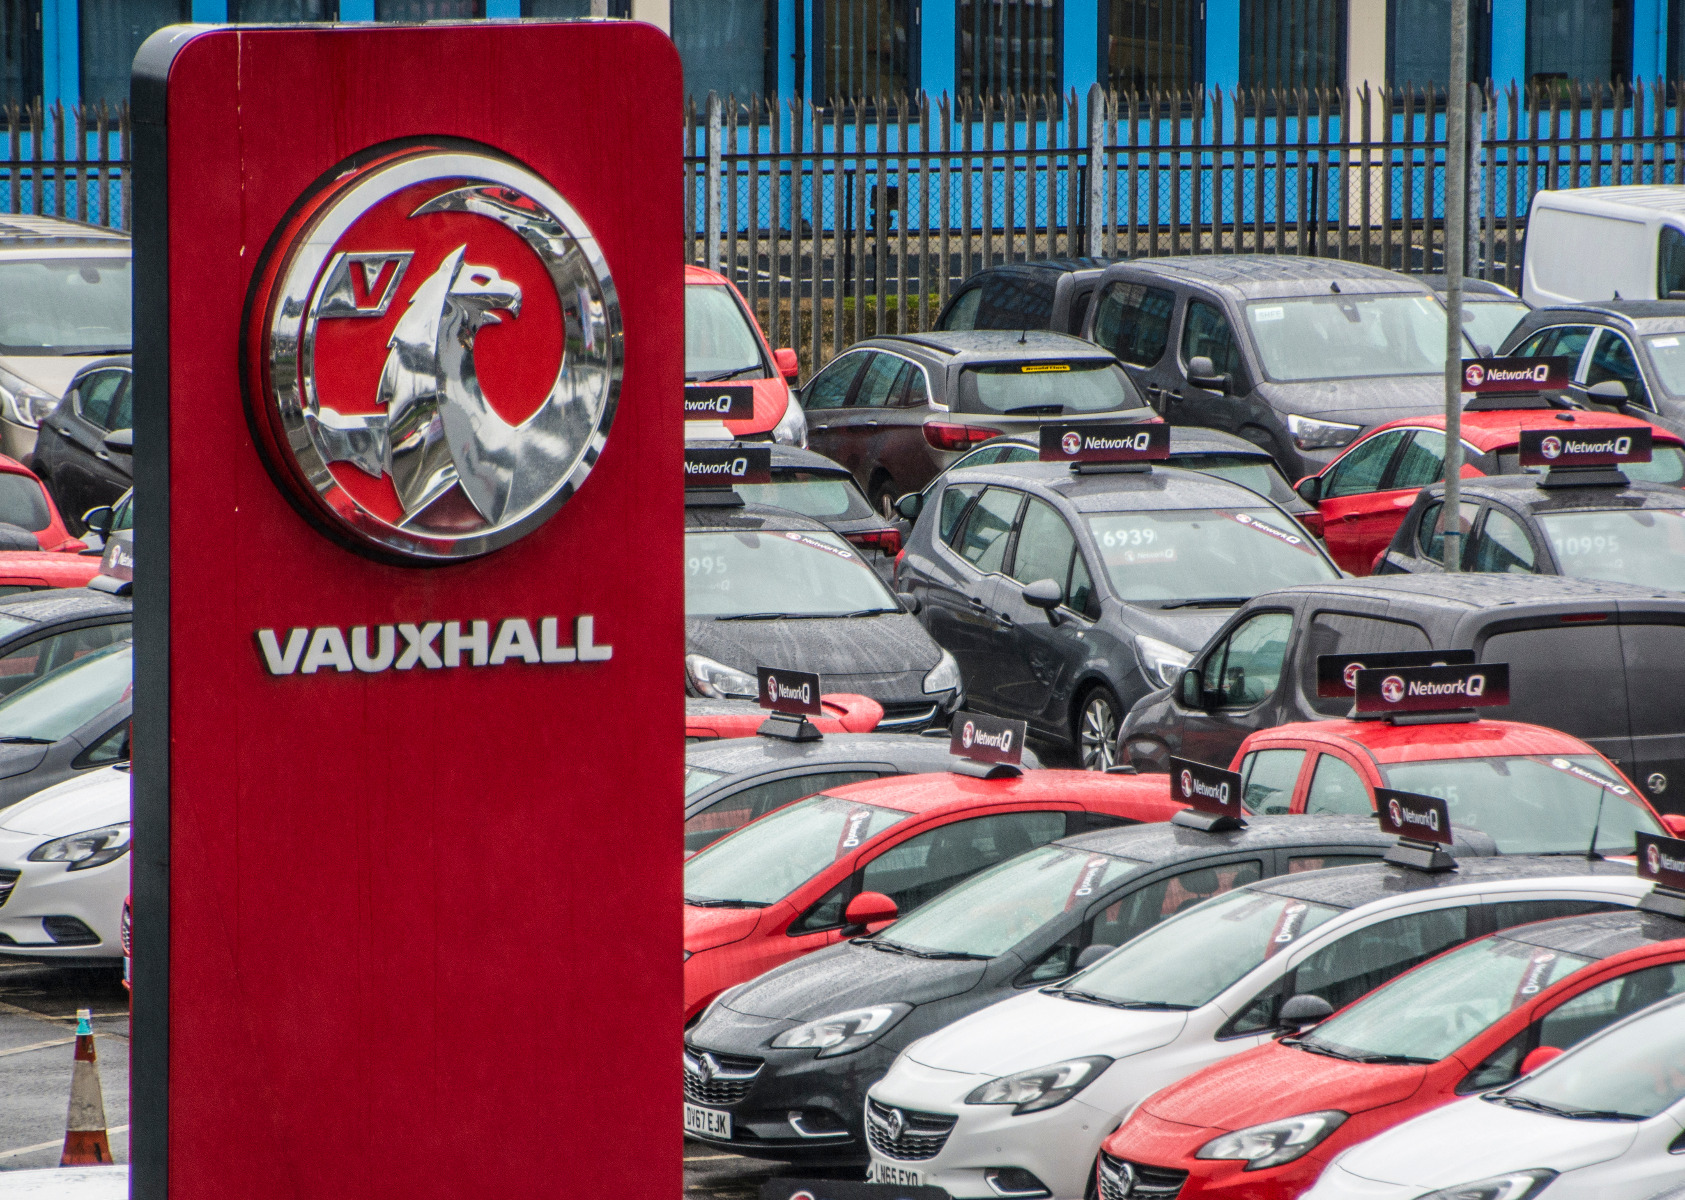 where to find a genuine Vauxhall car battery